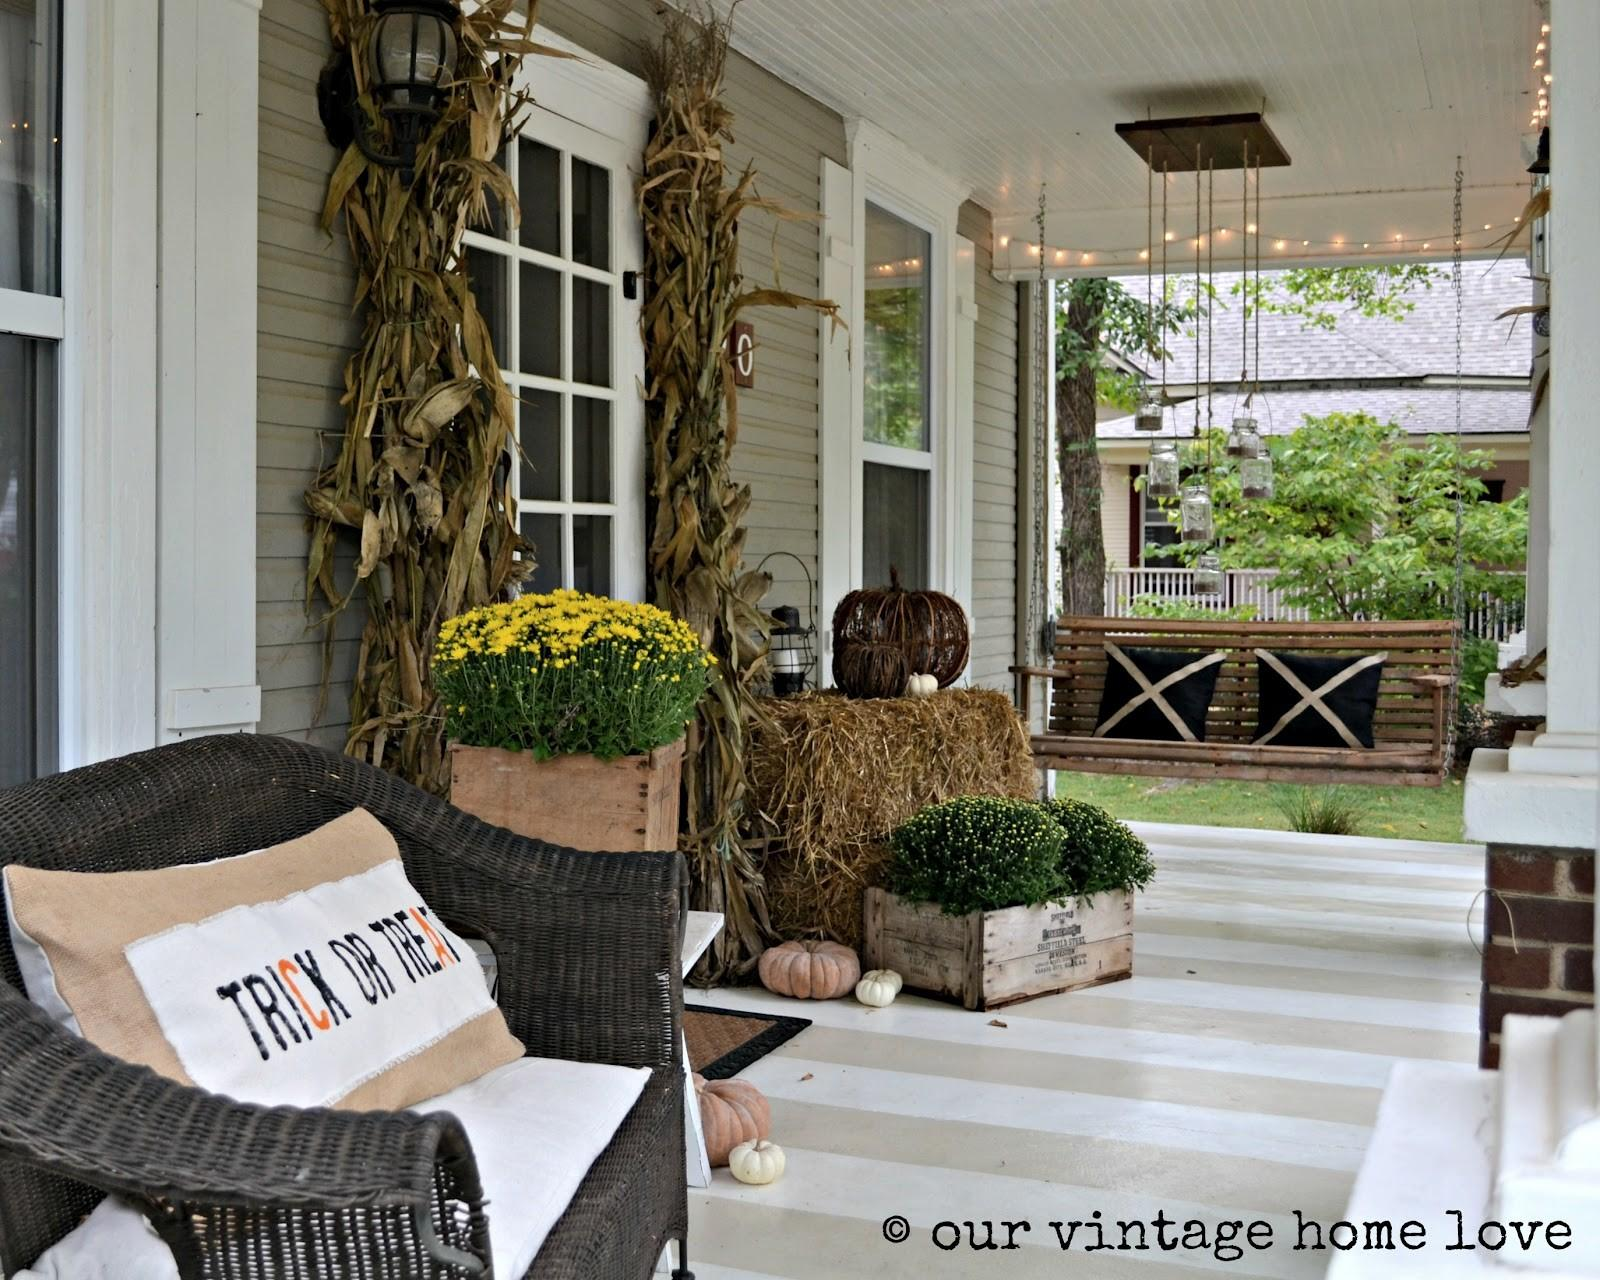 Our Vintage Home Love Autumn Porch Ideas